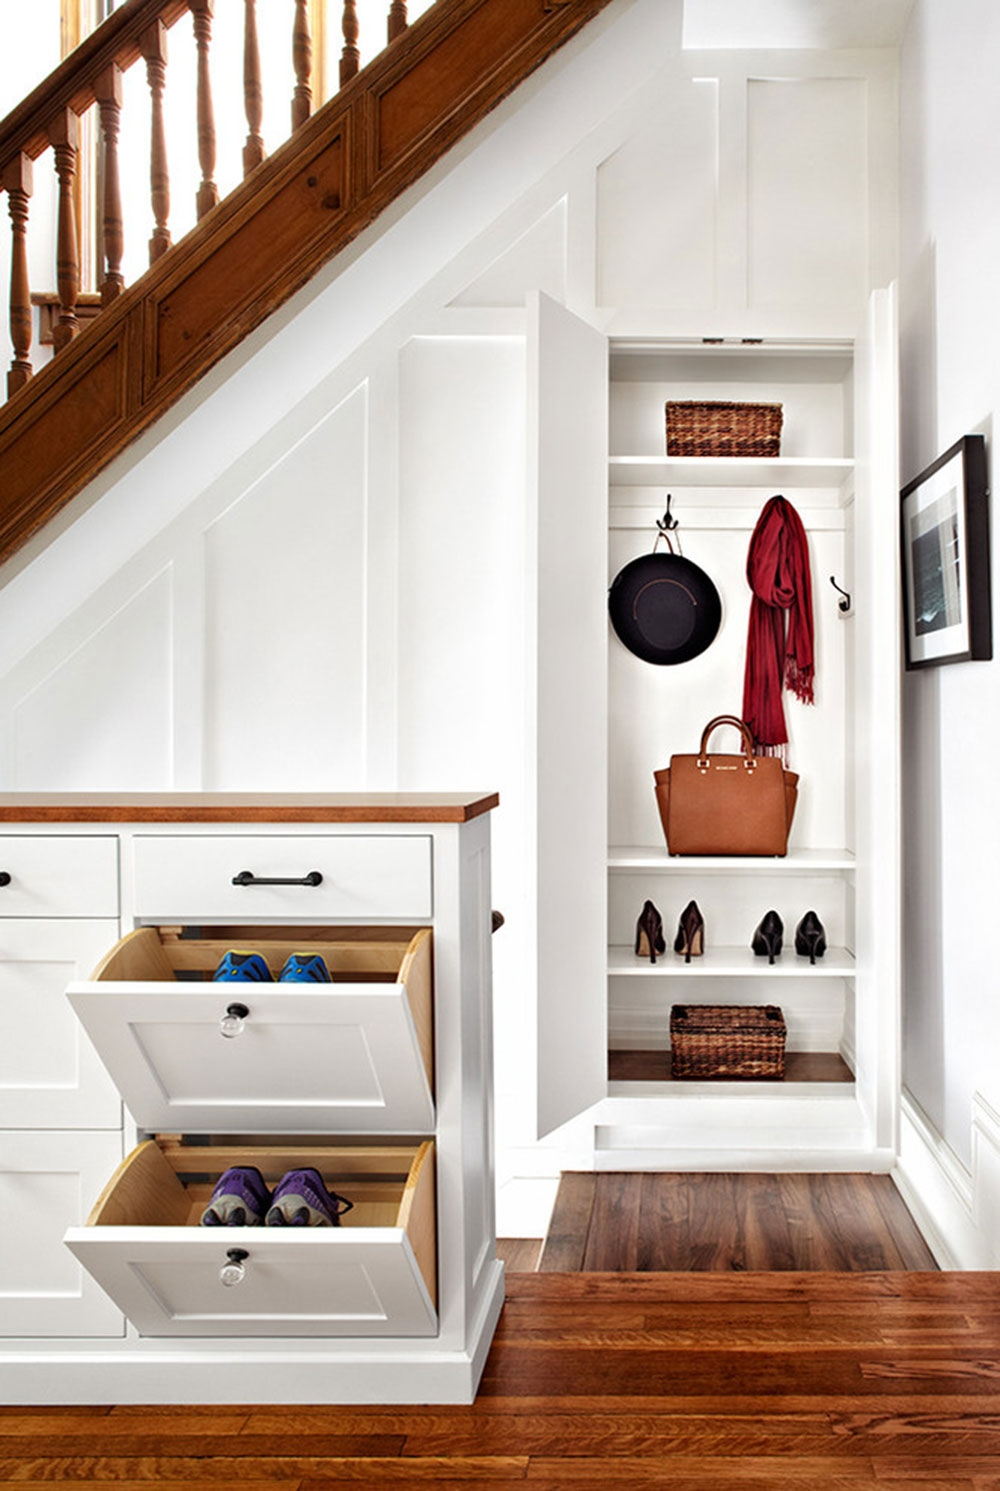 Under Stairs Storage To Maximize The Space From Your House | Cabinet Design Under Stairs | Tv Stand | Stairs Storage Ideas | Kitchen | Shelves | Staircase Ideas